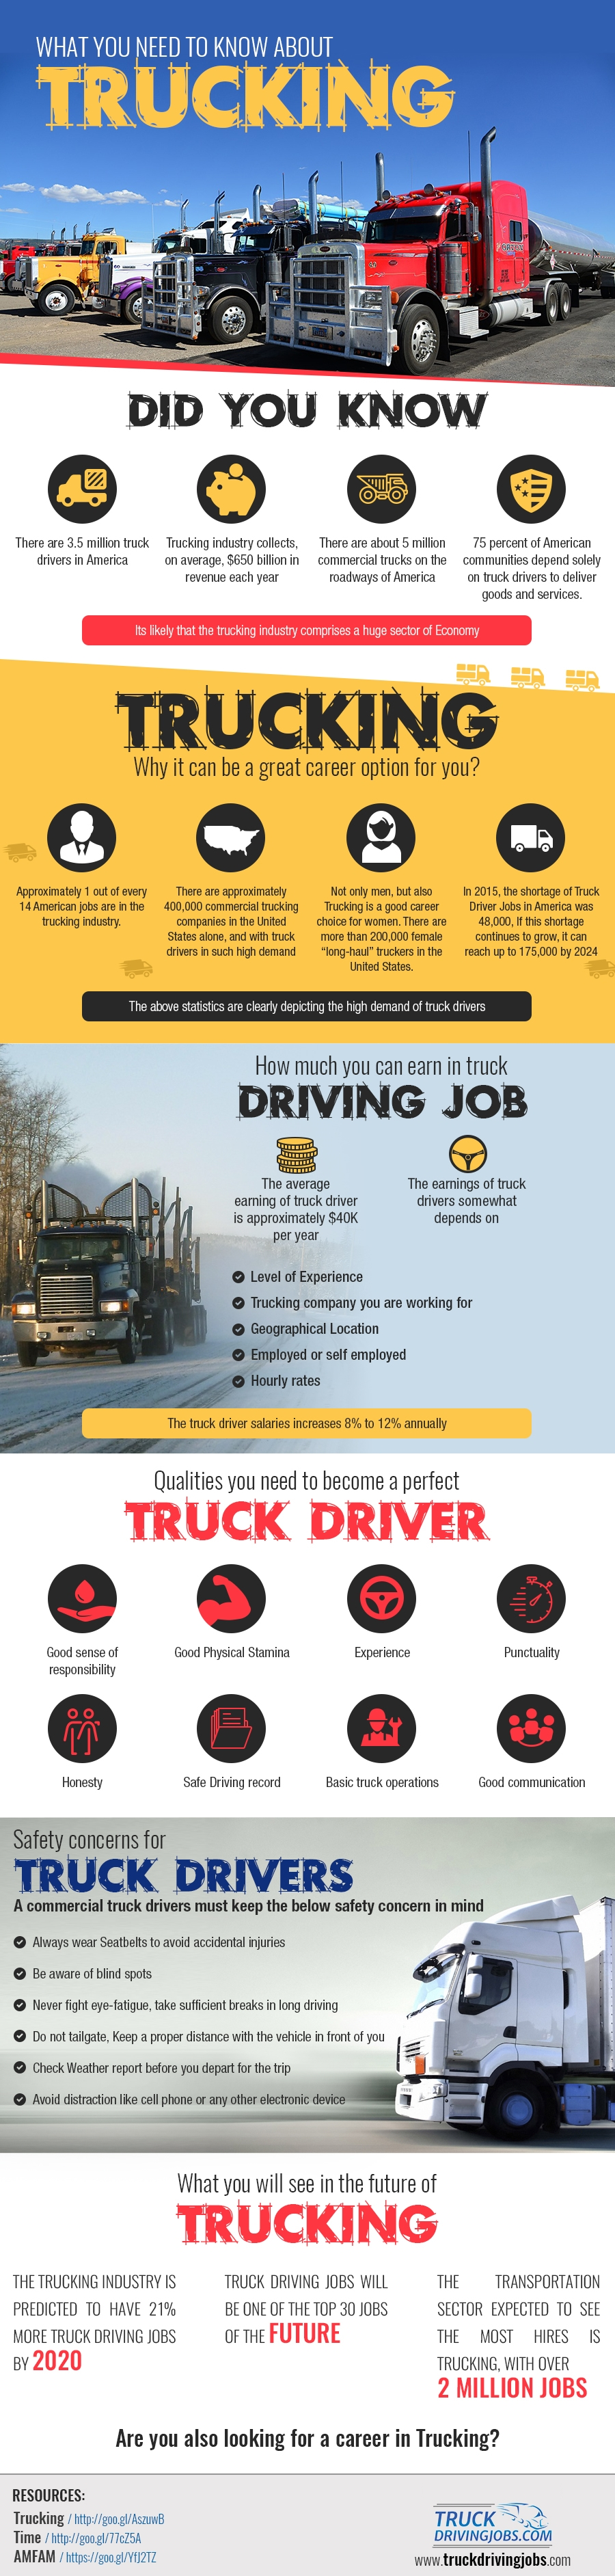 What You Need To Know About Trucking